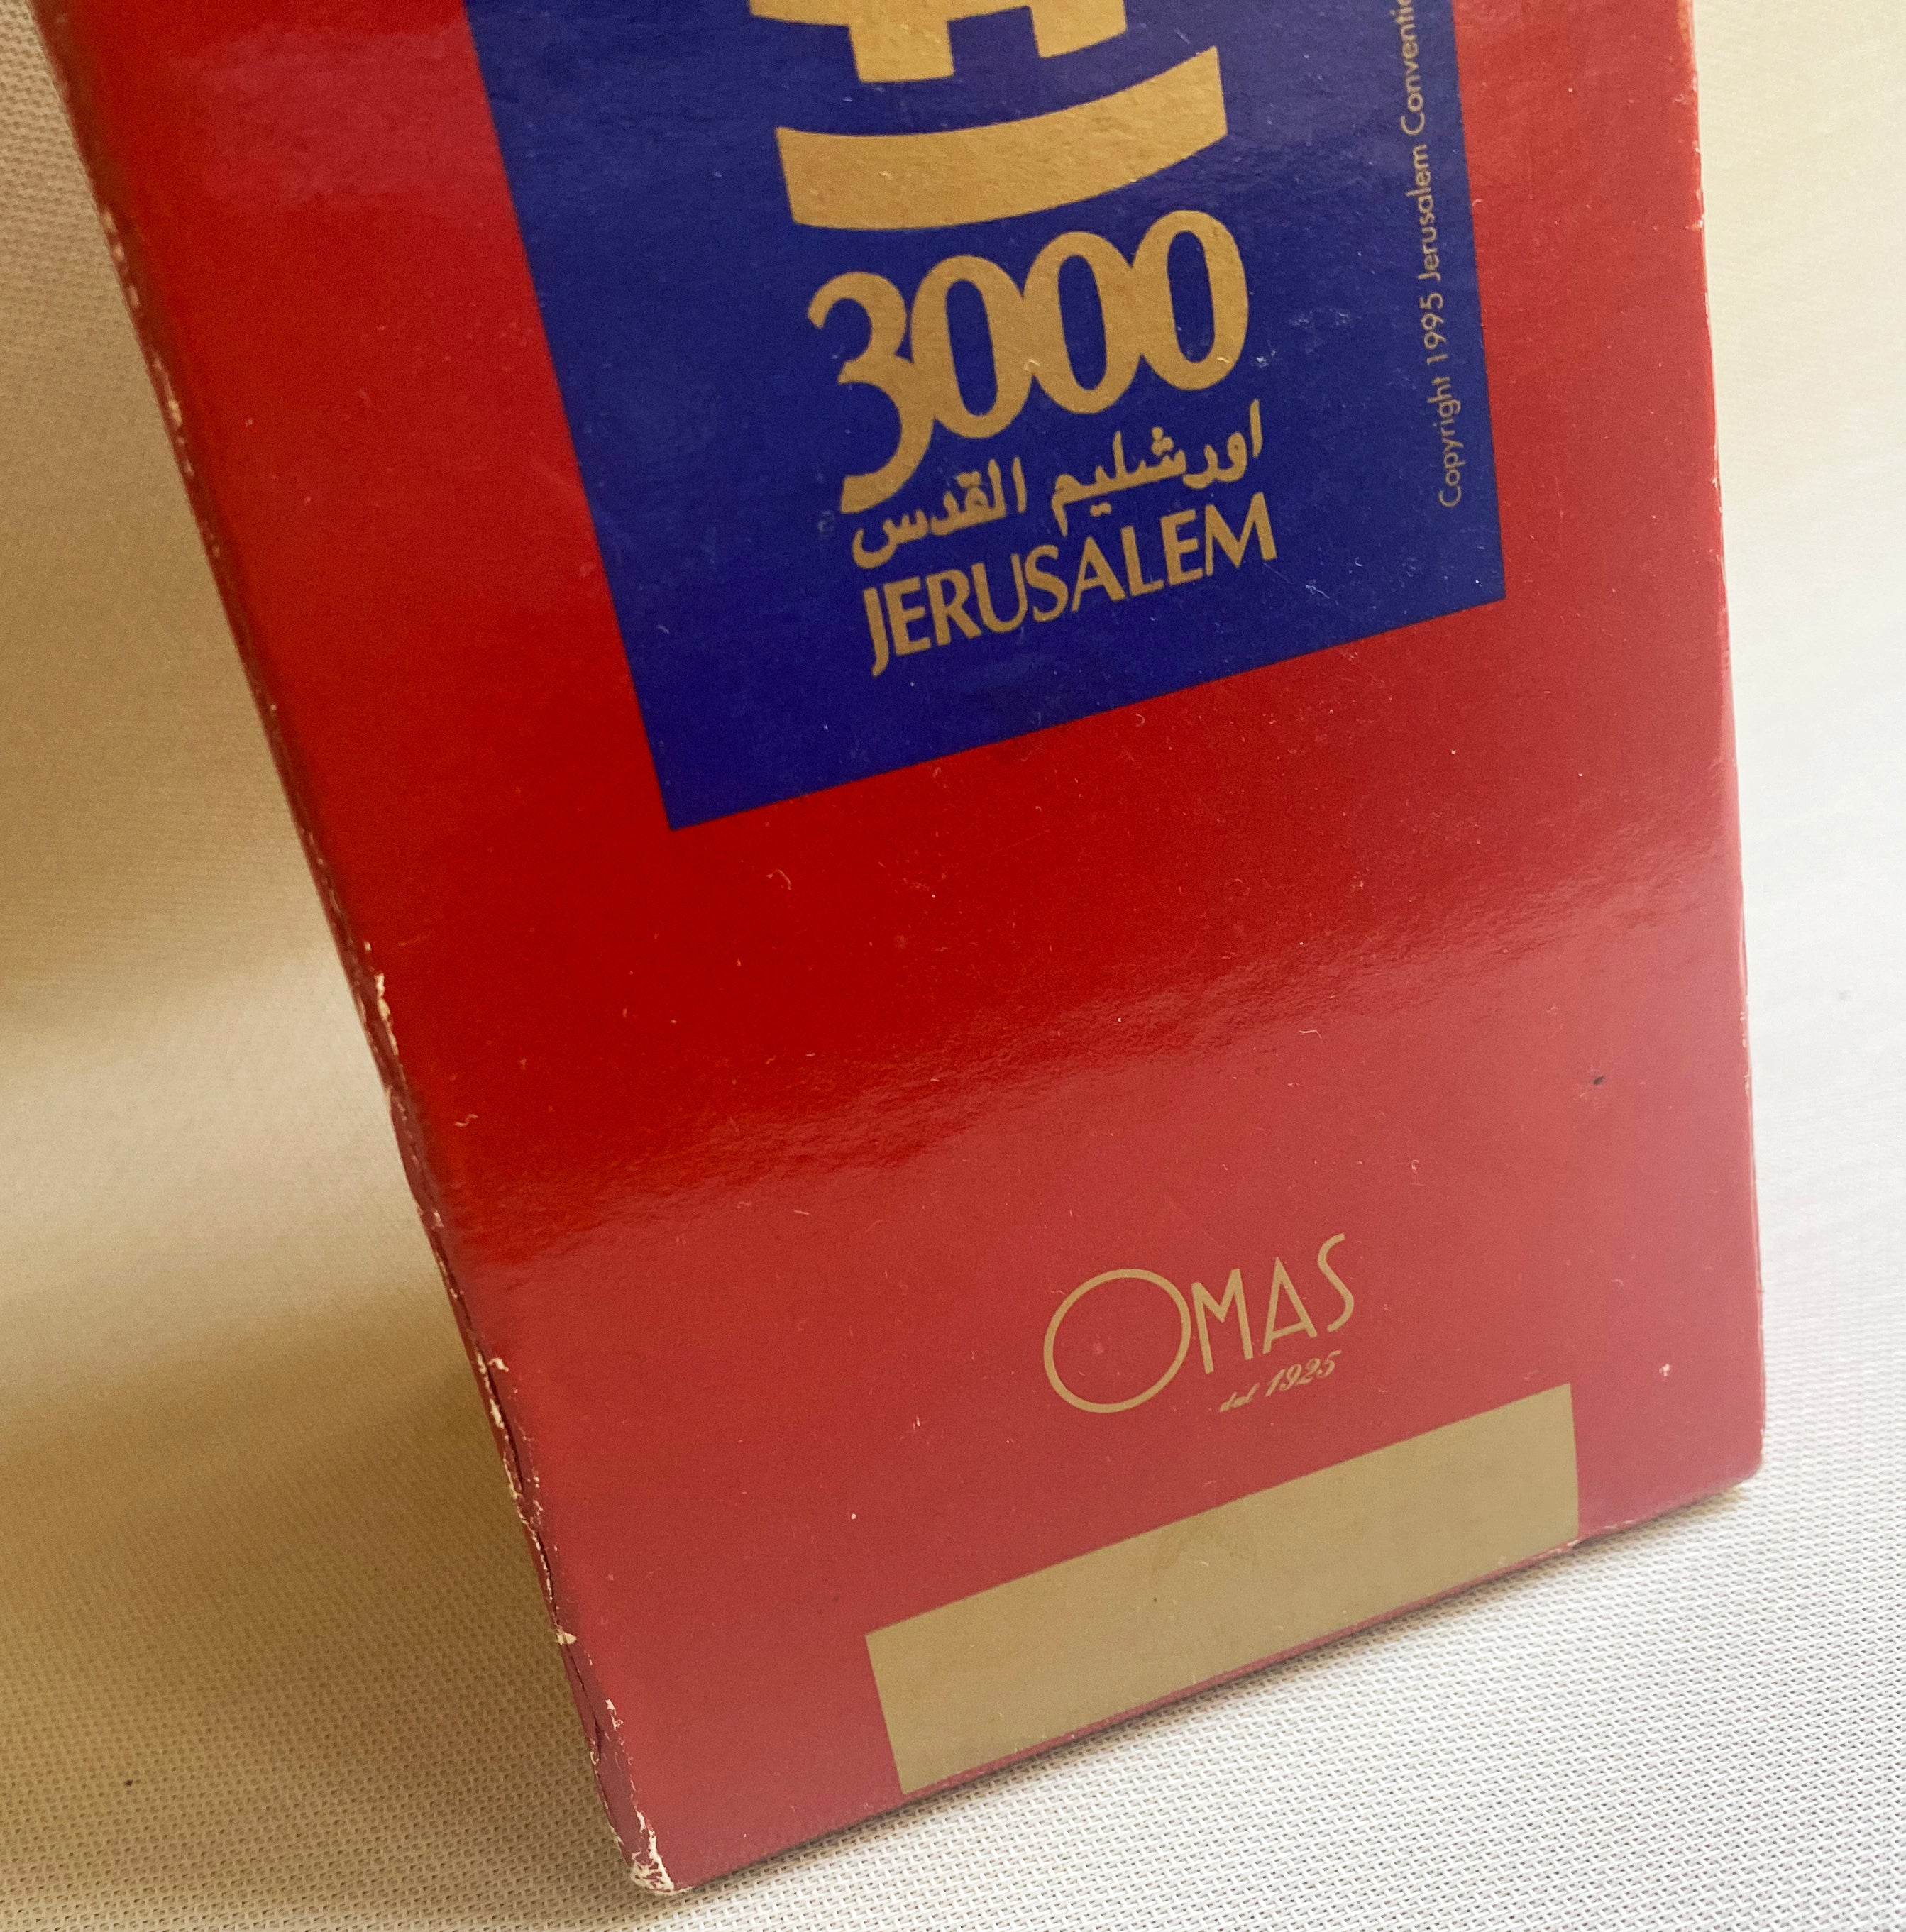 Omas Limited Edition Jerusalem 3000 Fountain Pen , NOS, Box and Papers, Italy